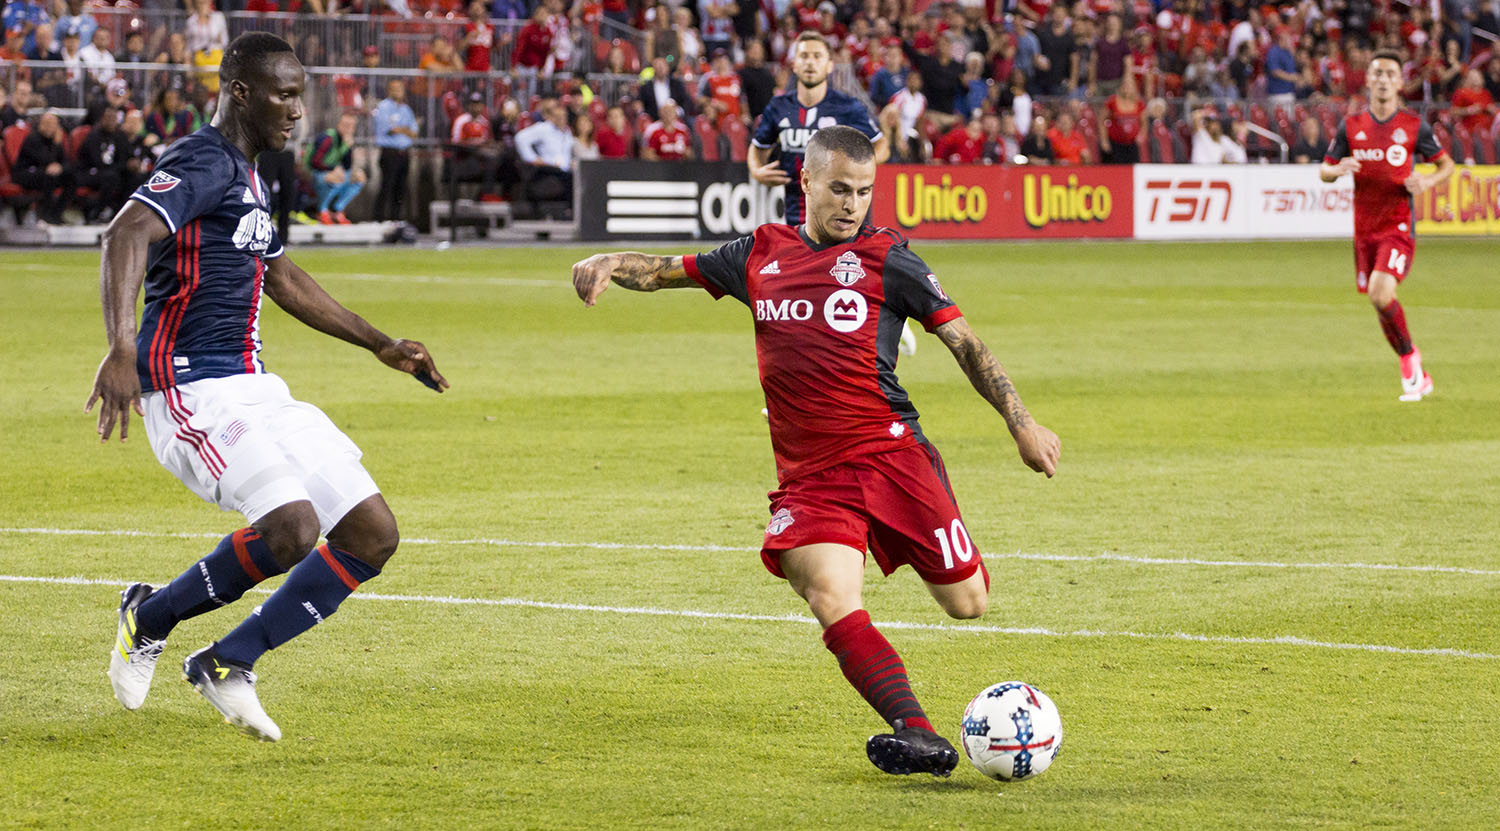 Sebastian Giovinco shoots a ball from inside the 18 yard box to bring Toronto FC to 2-0 on the night against New England Revolutin. Image by Dennis Marciniak of denMAR Media.